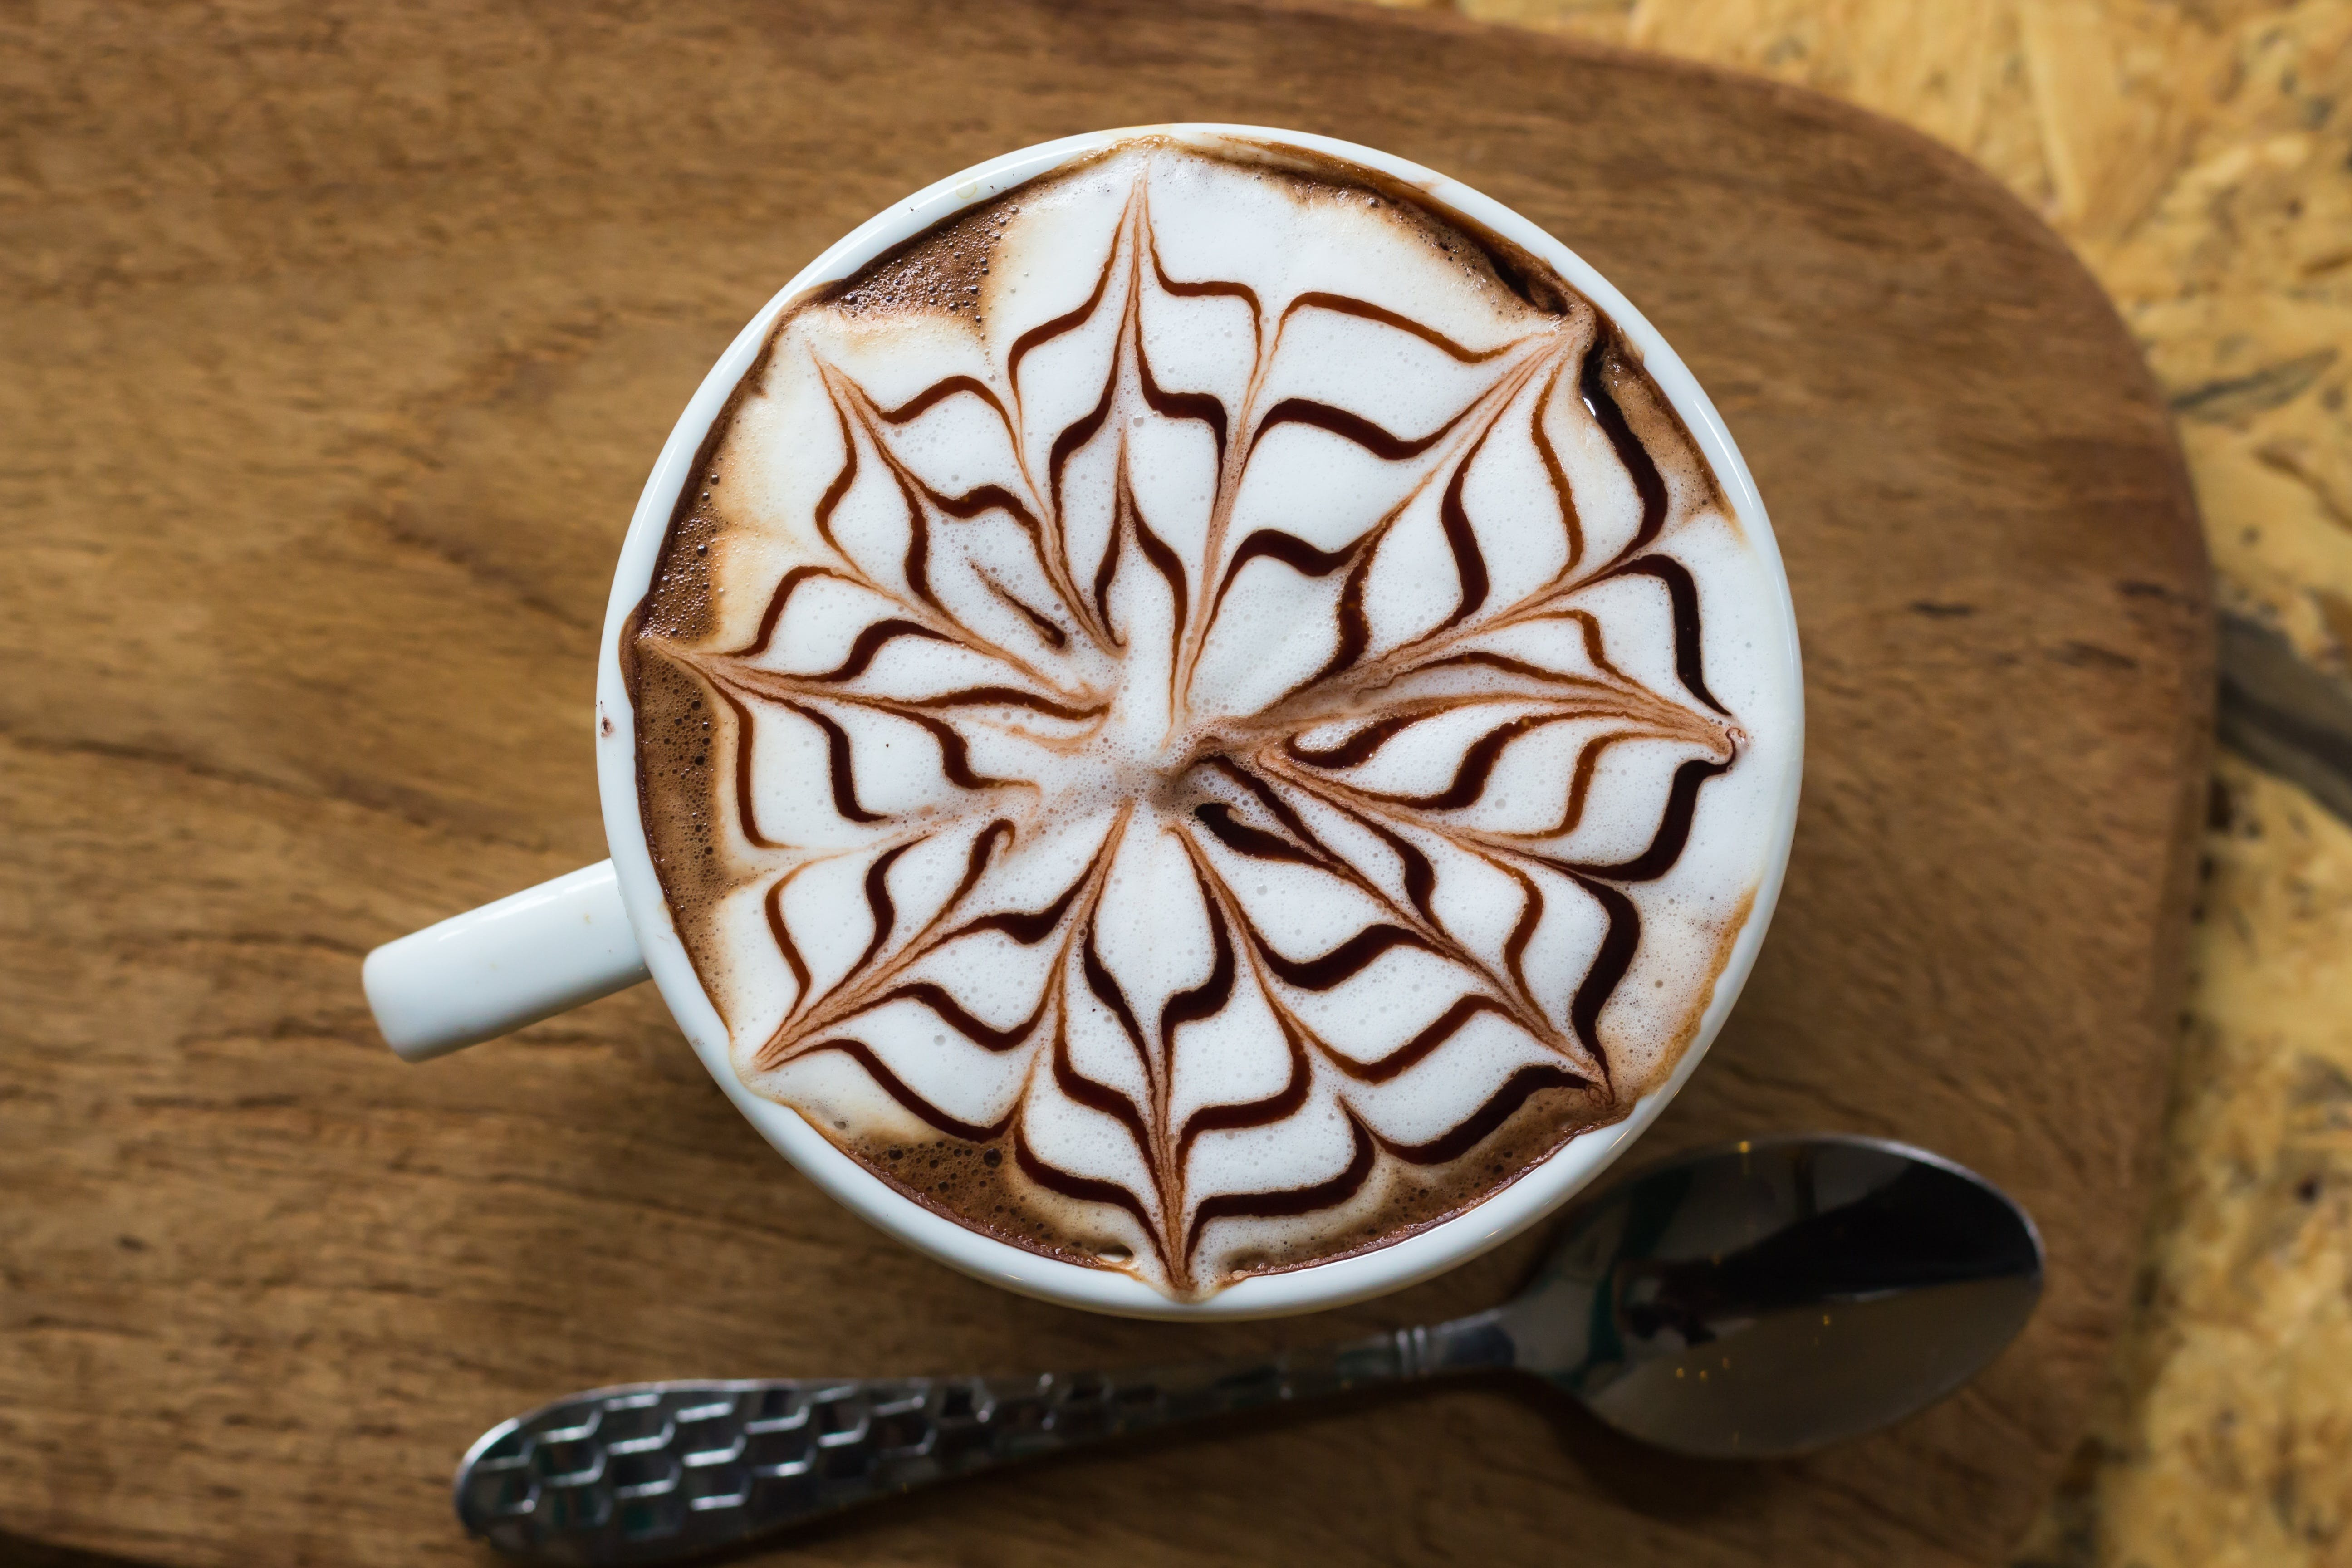 Brown and White Coffee With Floral Art in White Ceramic Mug